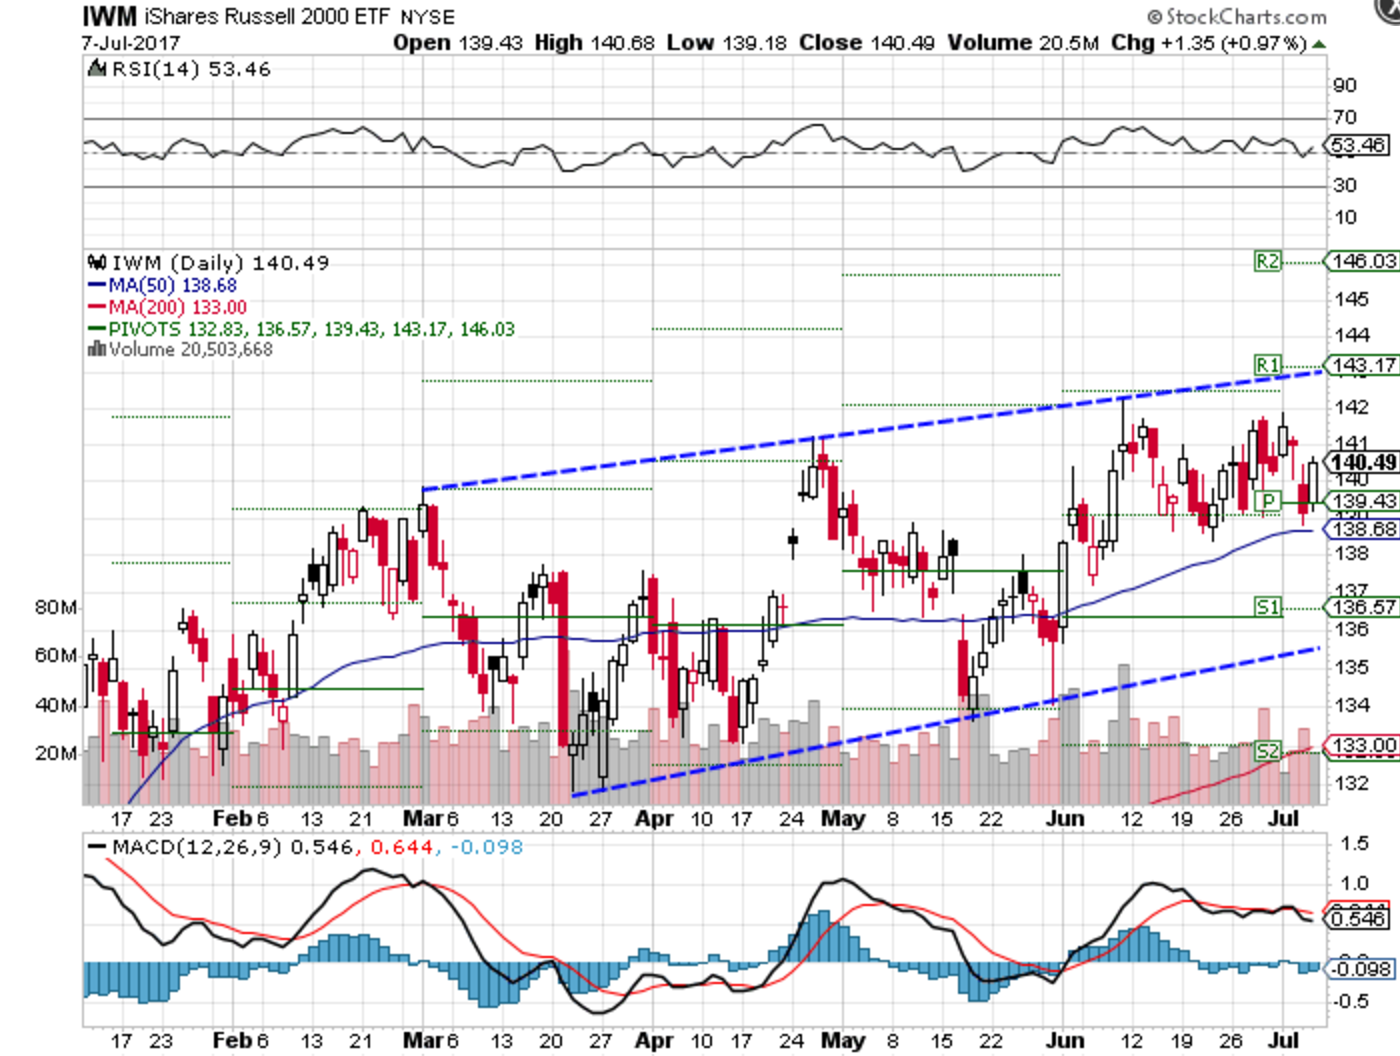 Technical chart showing the year-to-date performance of the iShares Russell 2000 Index ETF (IWM)